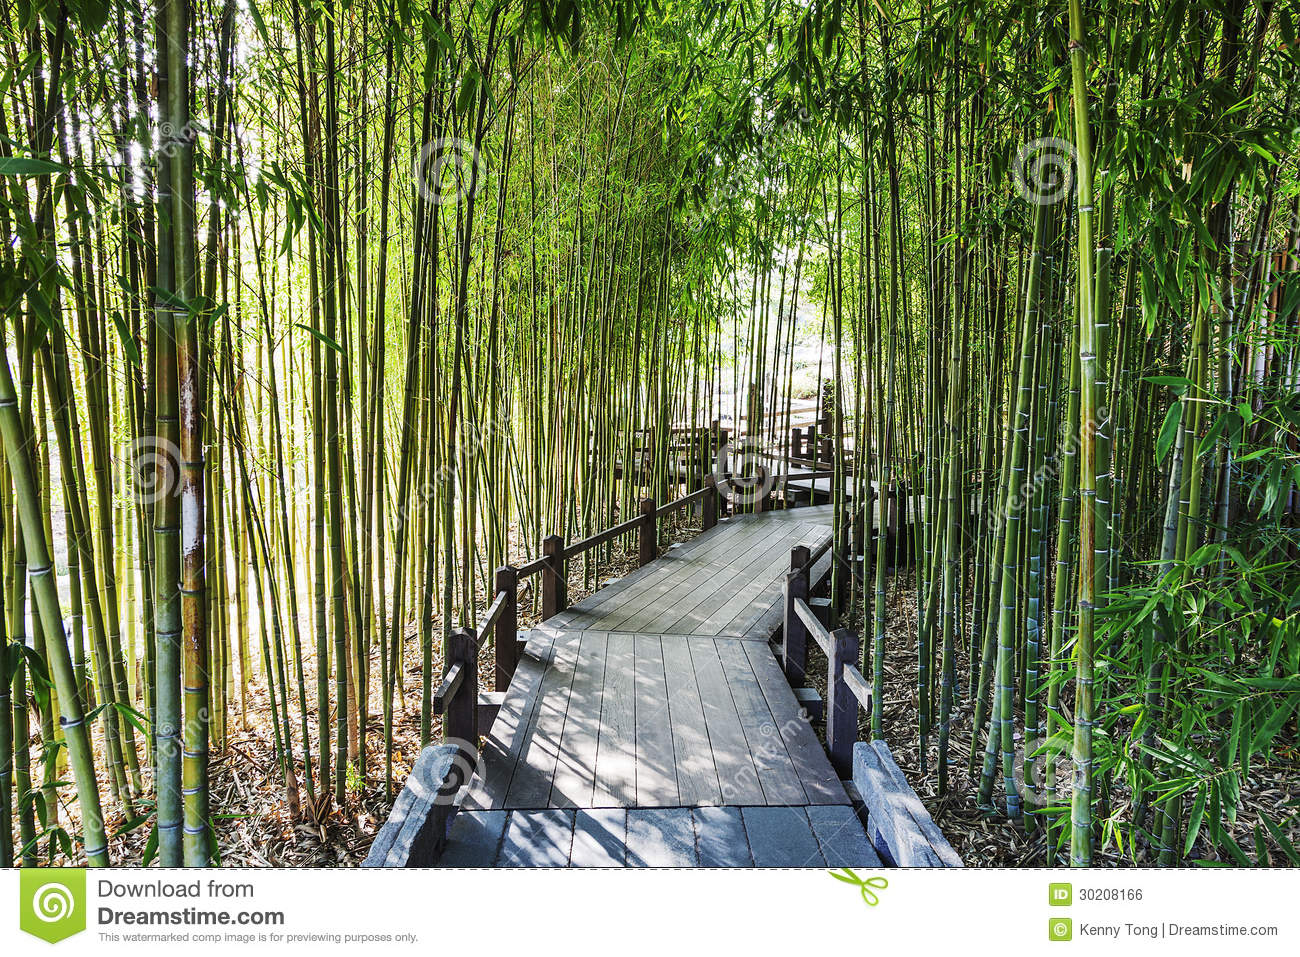 33376 in addition Retro Objects Cartoon Illustration Set 15677230 together with Lorain Lighthouse At Sunset Michael Pickett besides Royalty Free Stock Image Bamboo Garden Wooden Walkway Image30208166 also spacabi s co. on yoga house plans